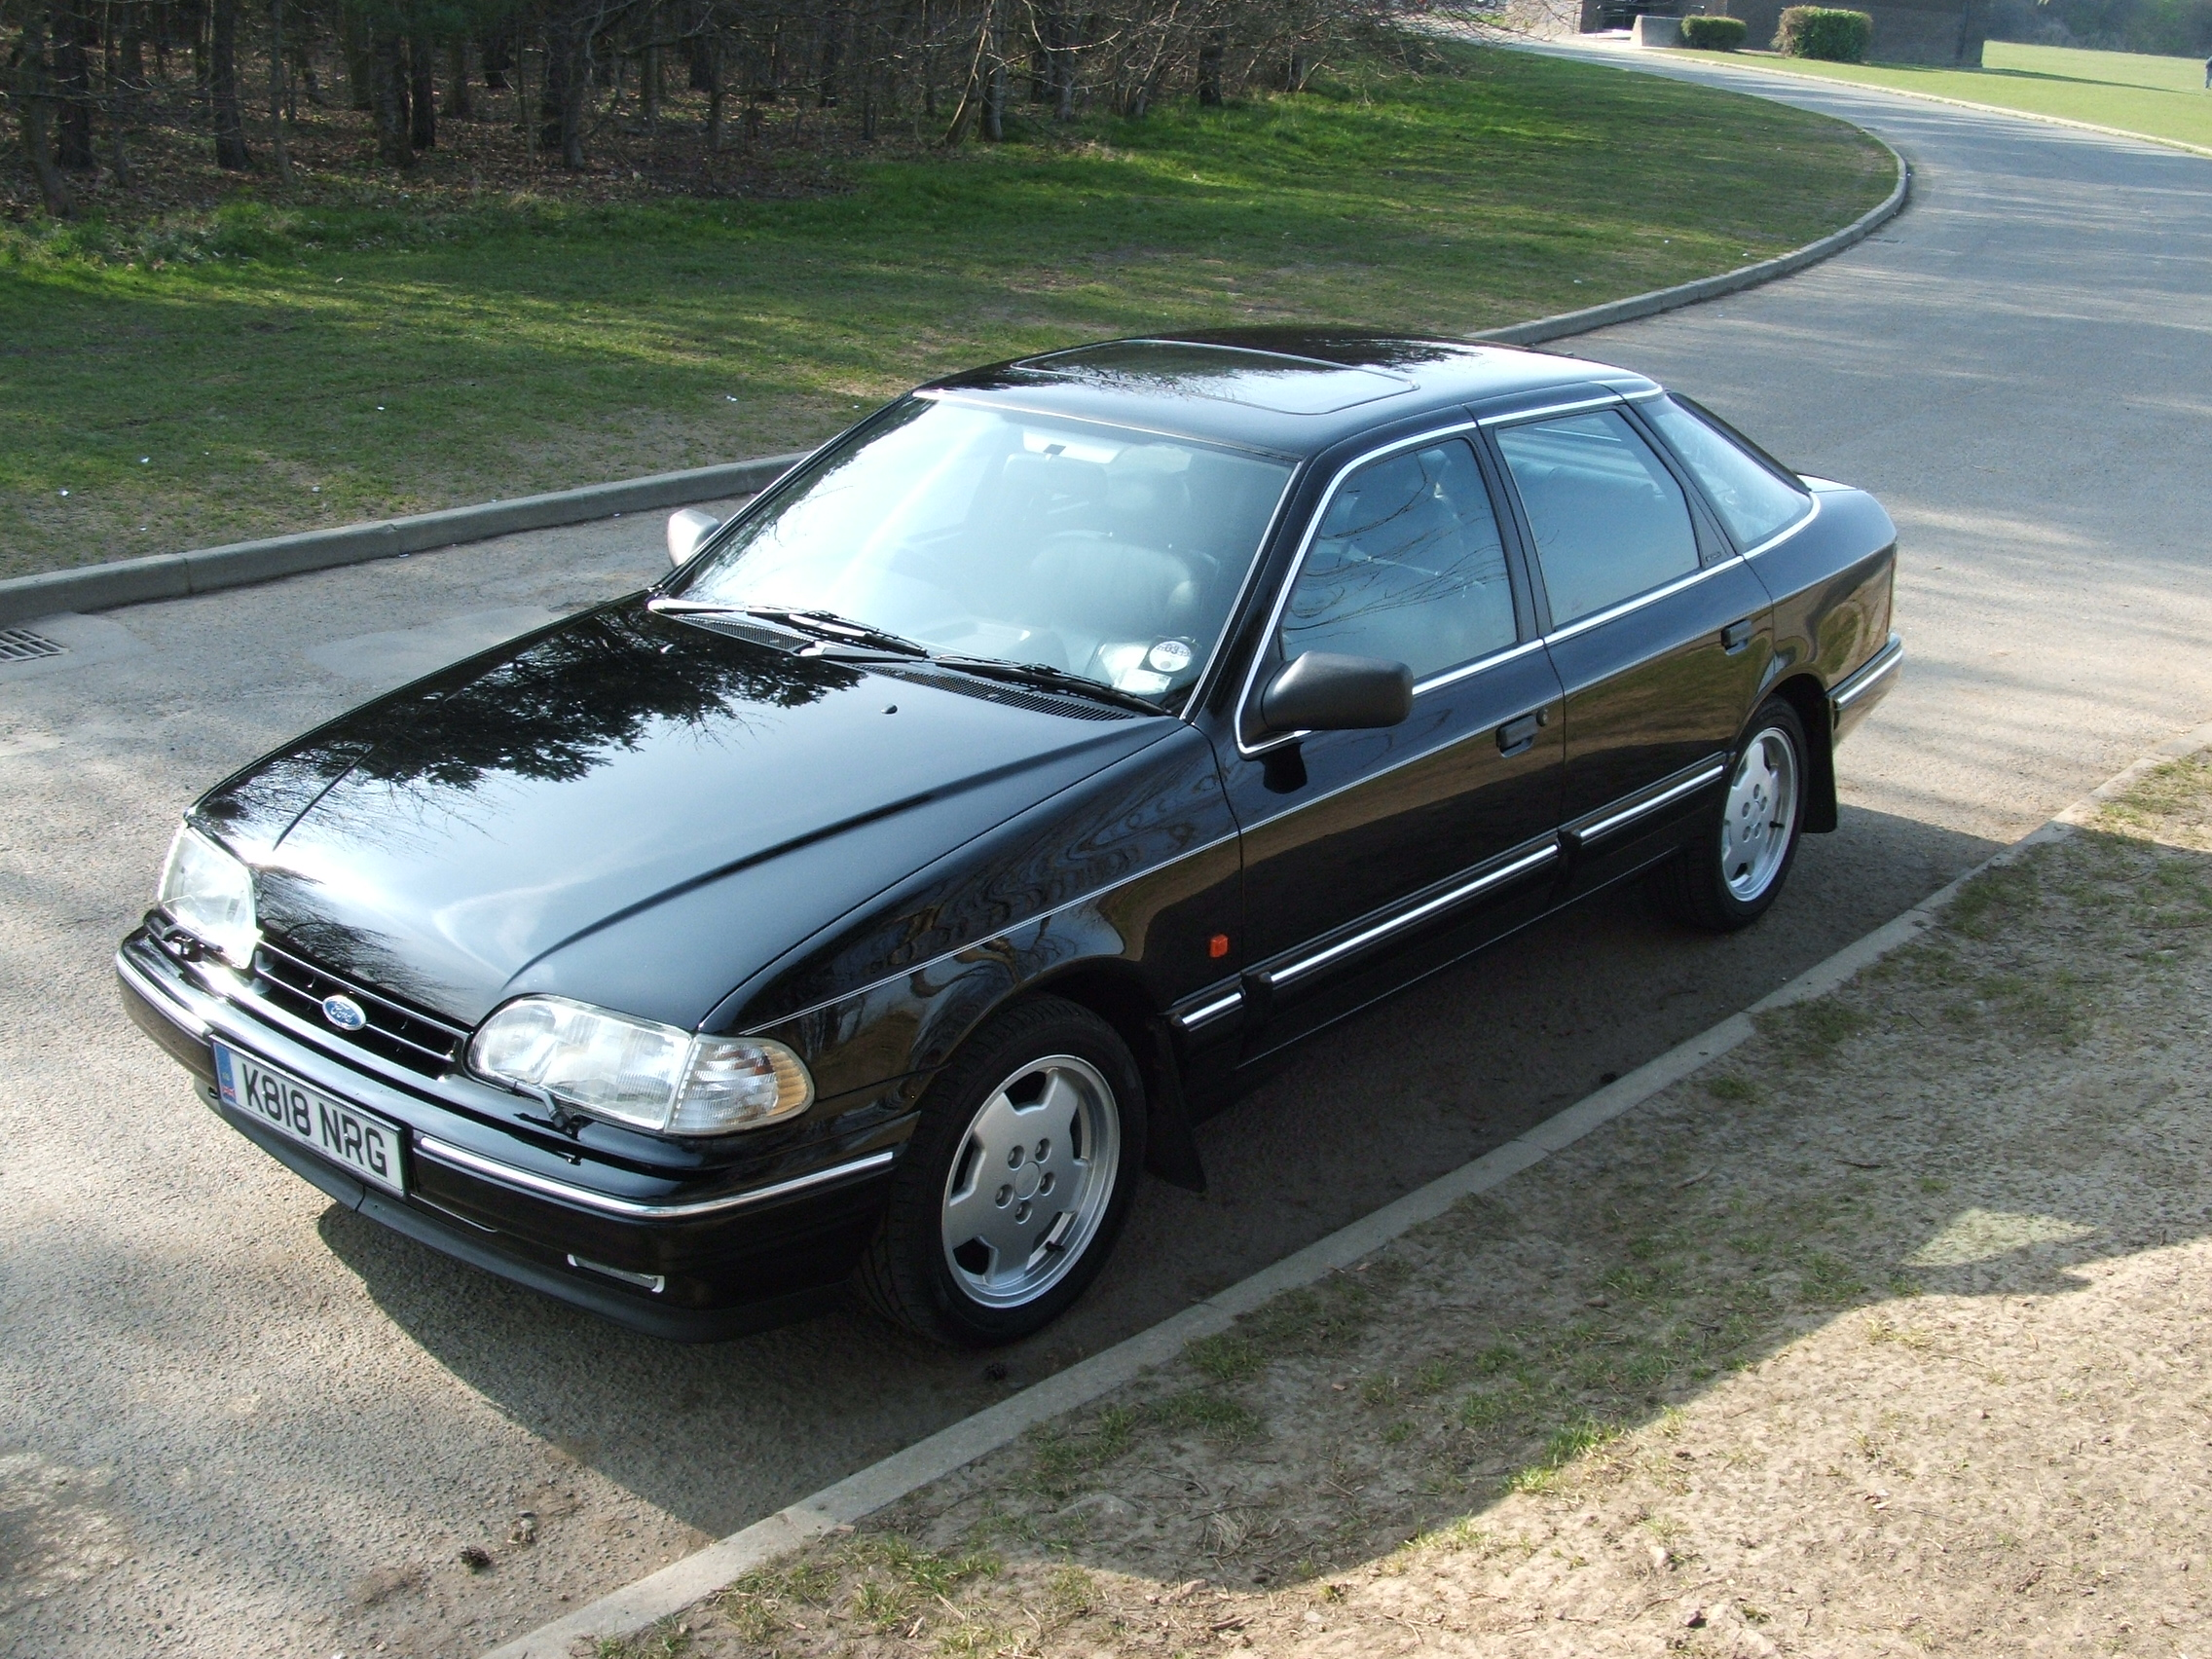 ford scorpio i wagon (gge) 1990 images #4